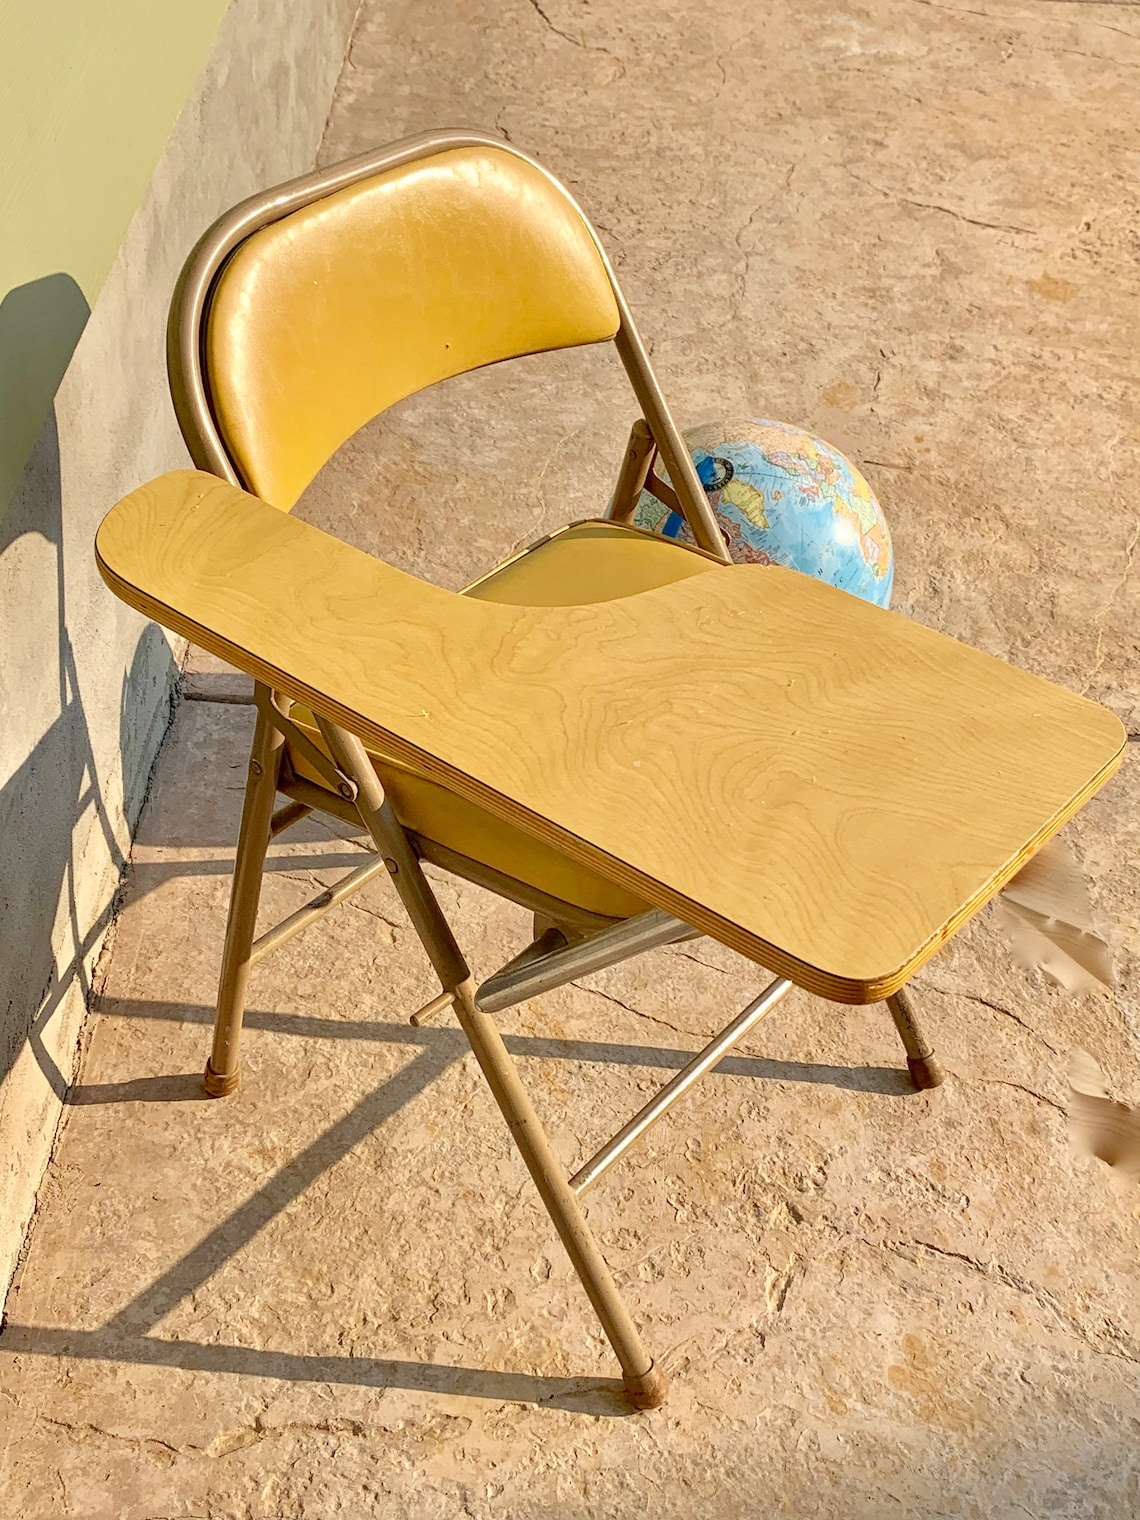 Vintage Industrial Student Desk - Tablet Arm Chair - 1970s - Krueger - Miracle Fold Arm - State Police - Folding Metal Chair Yellow